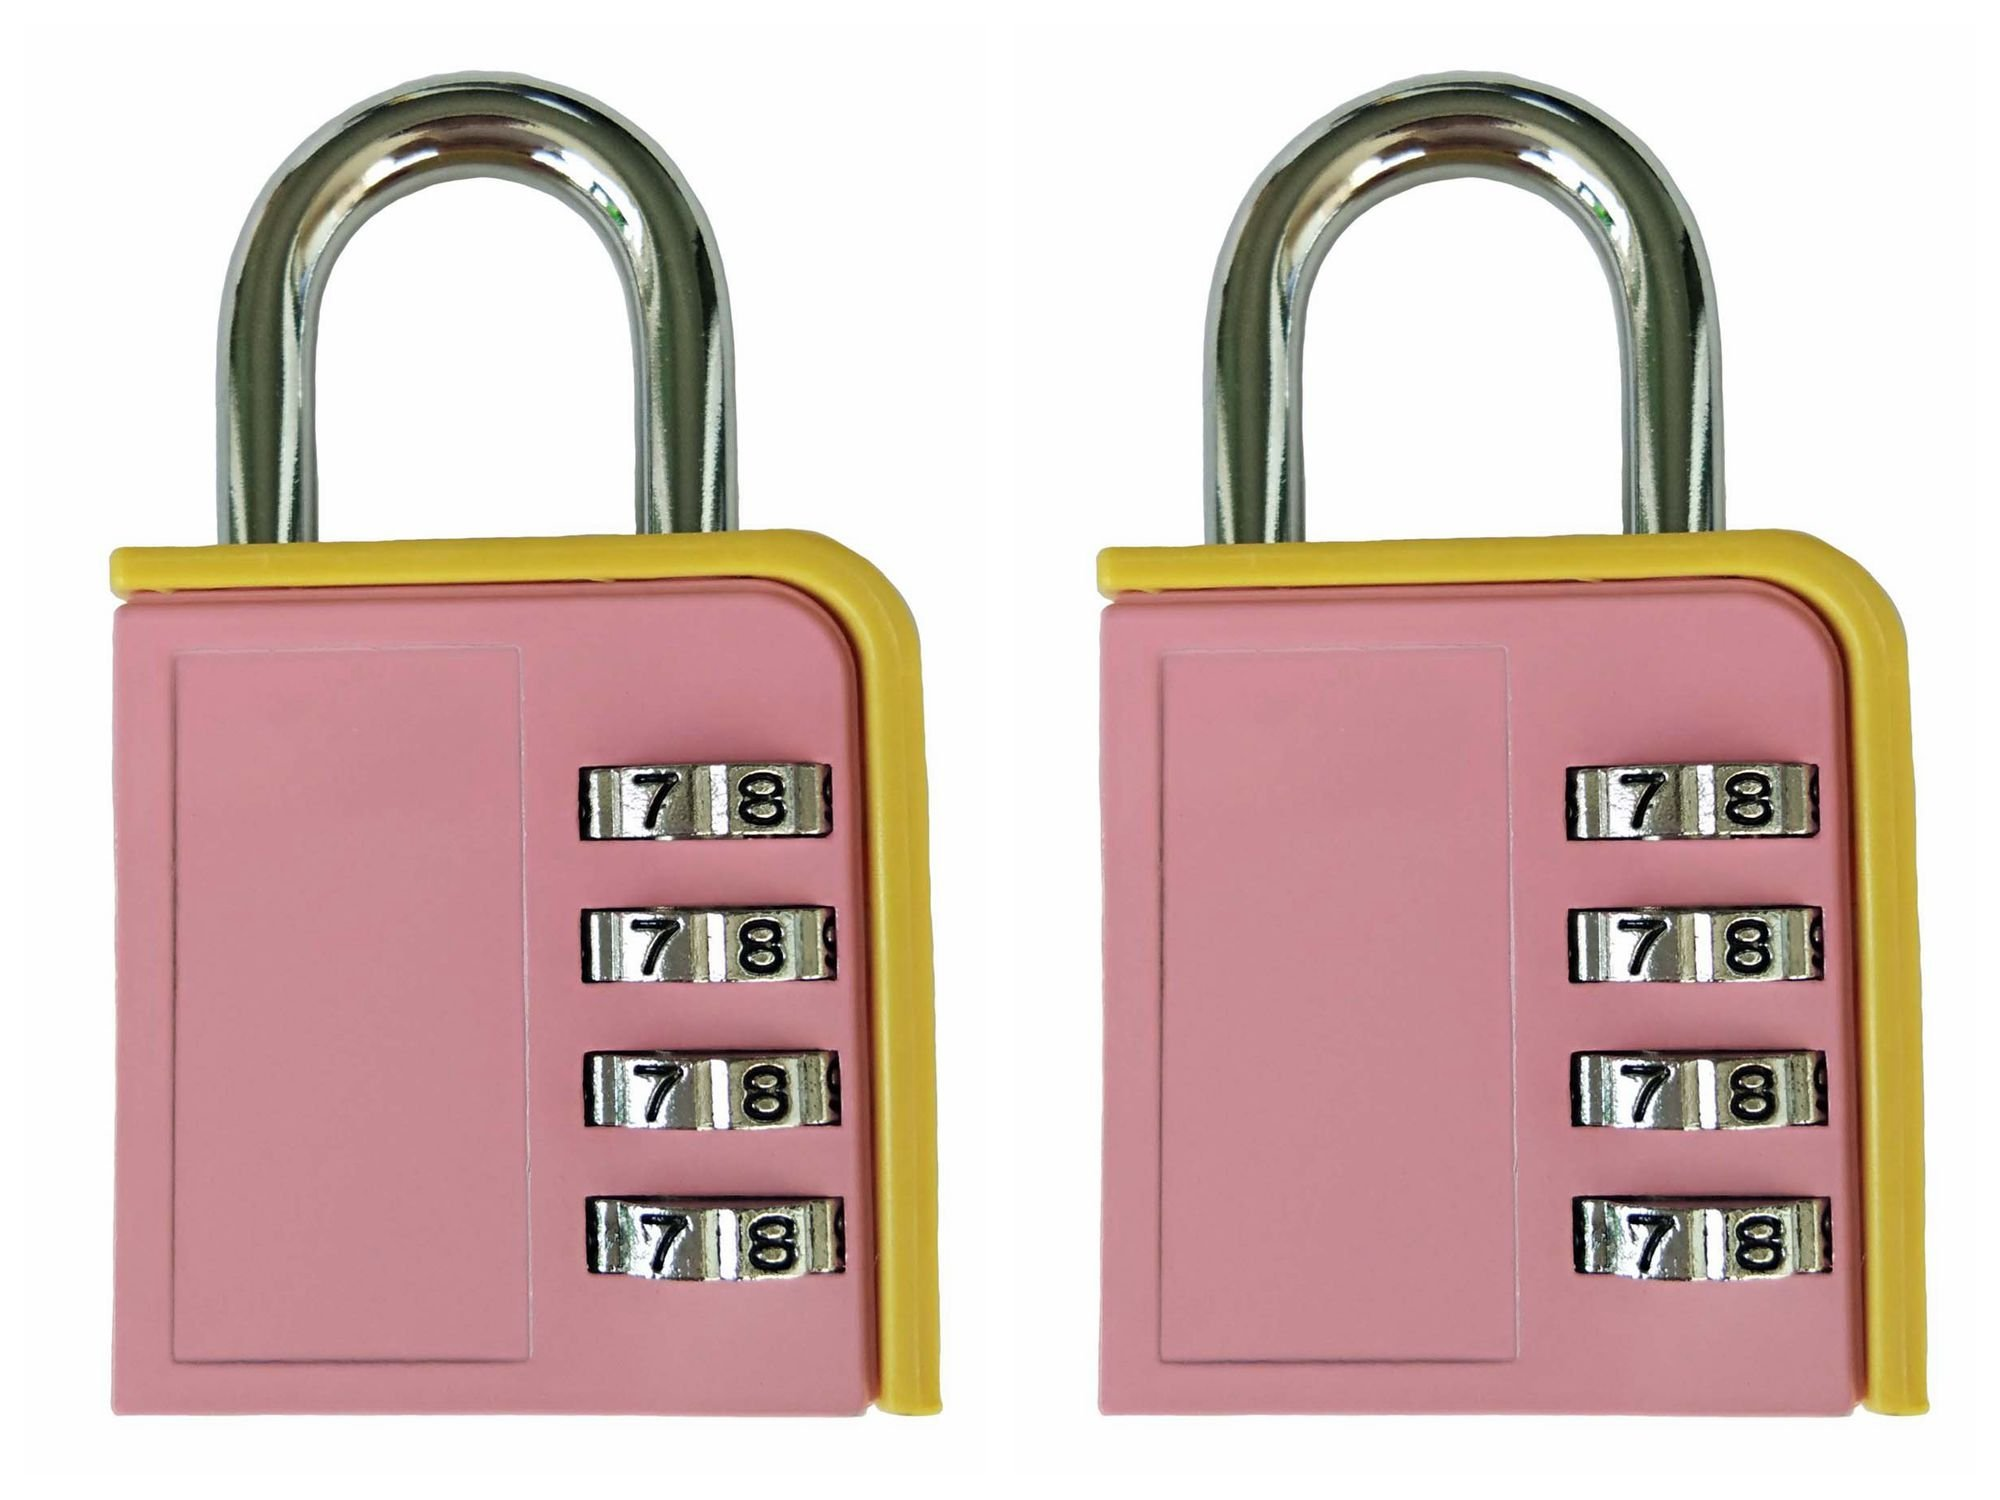 L-Anan Combination Lock 4 Digit Padlock for School Gym Locker, Sports Locker, Fence, Toolbox, Case, Hasp Storage (2 Pack Pink and Yellow)